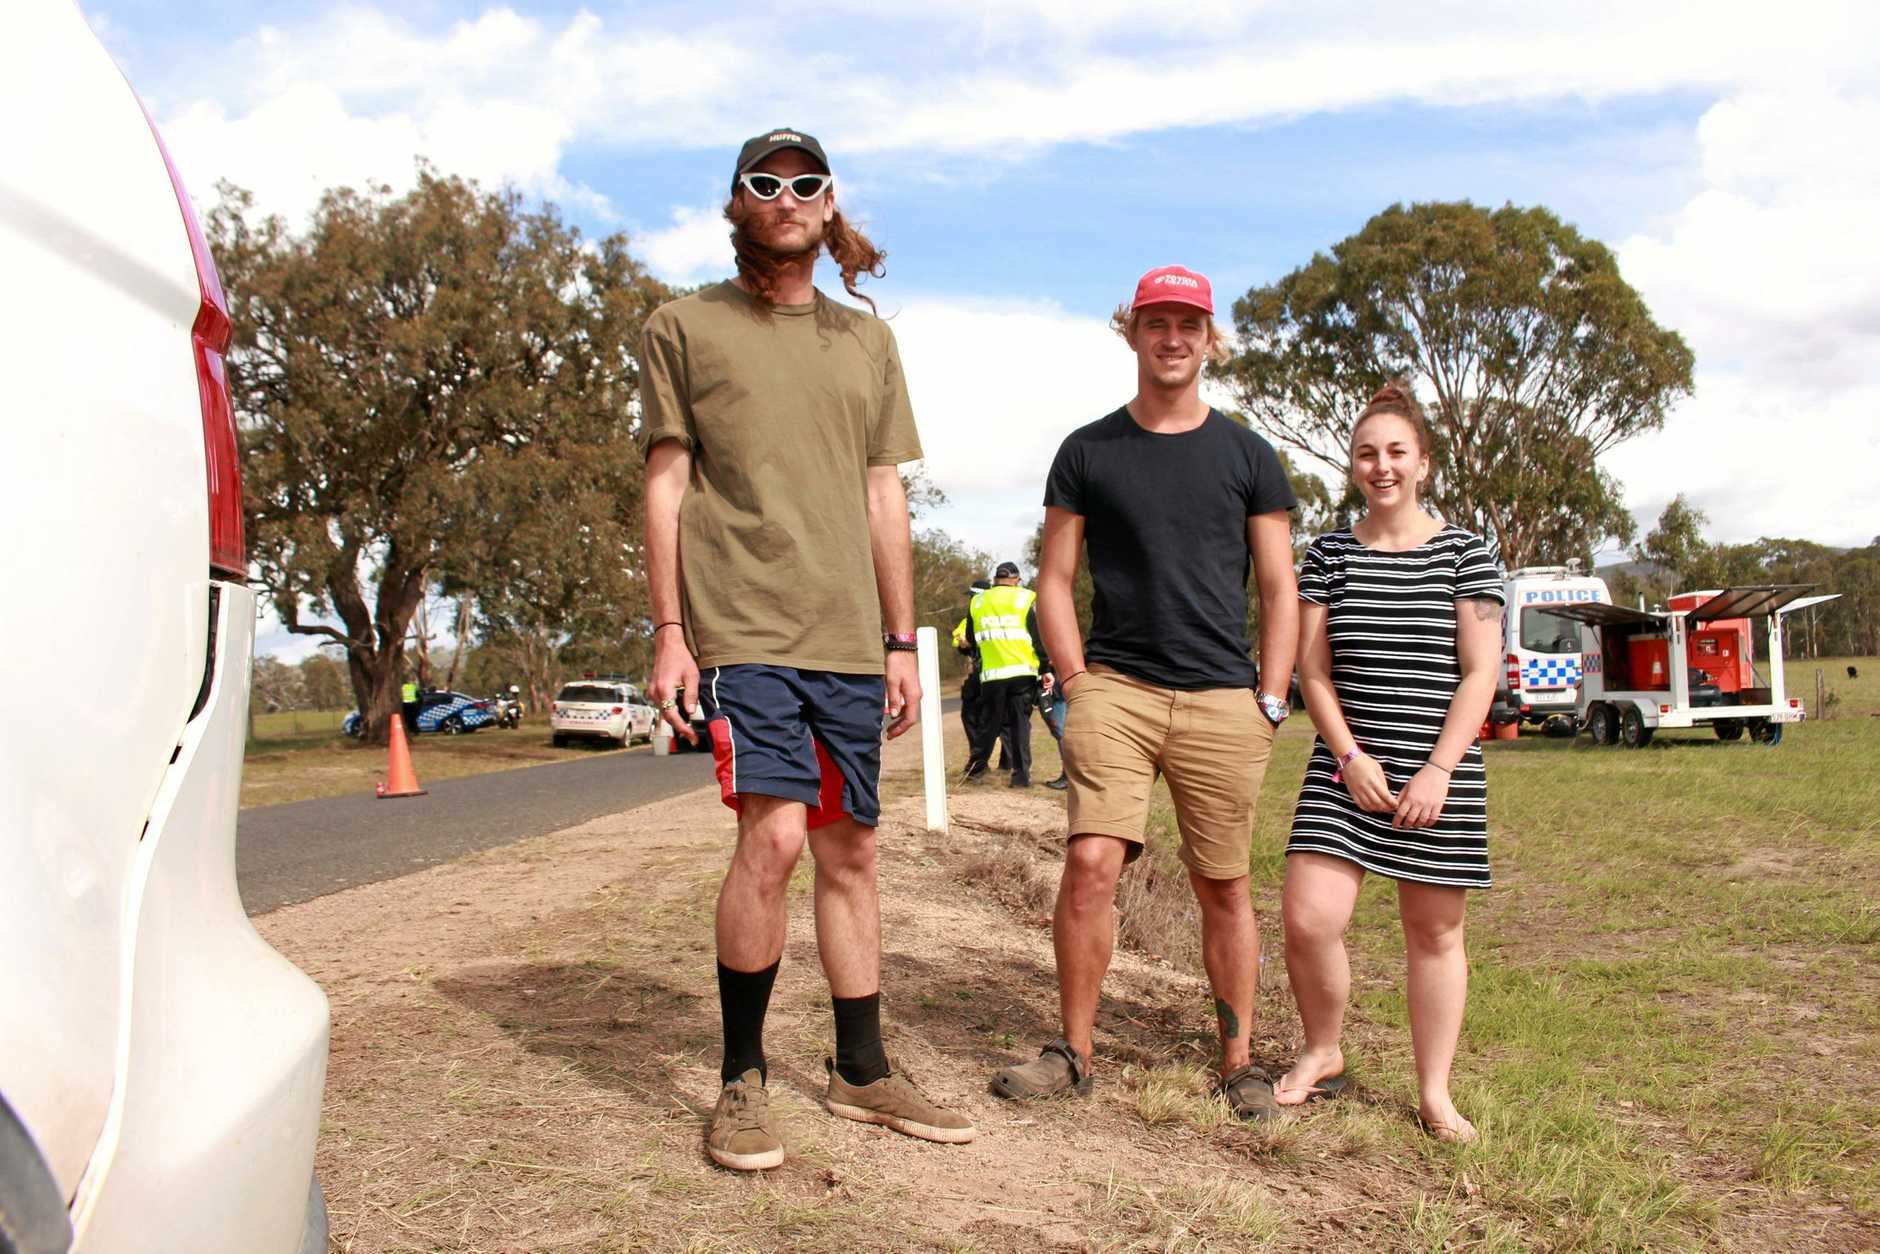 Festival-goers Lizard Aroyan, Julia Hughes and Jake McKenny have expressed their shock after two young people were found dead at Rabbits Eat Lettuce festival near Warwick on the Southern Downs.